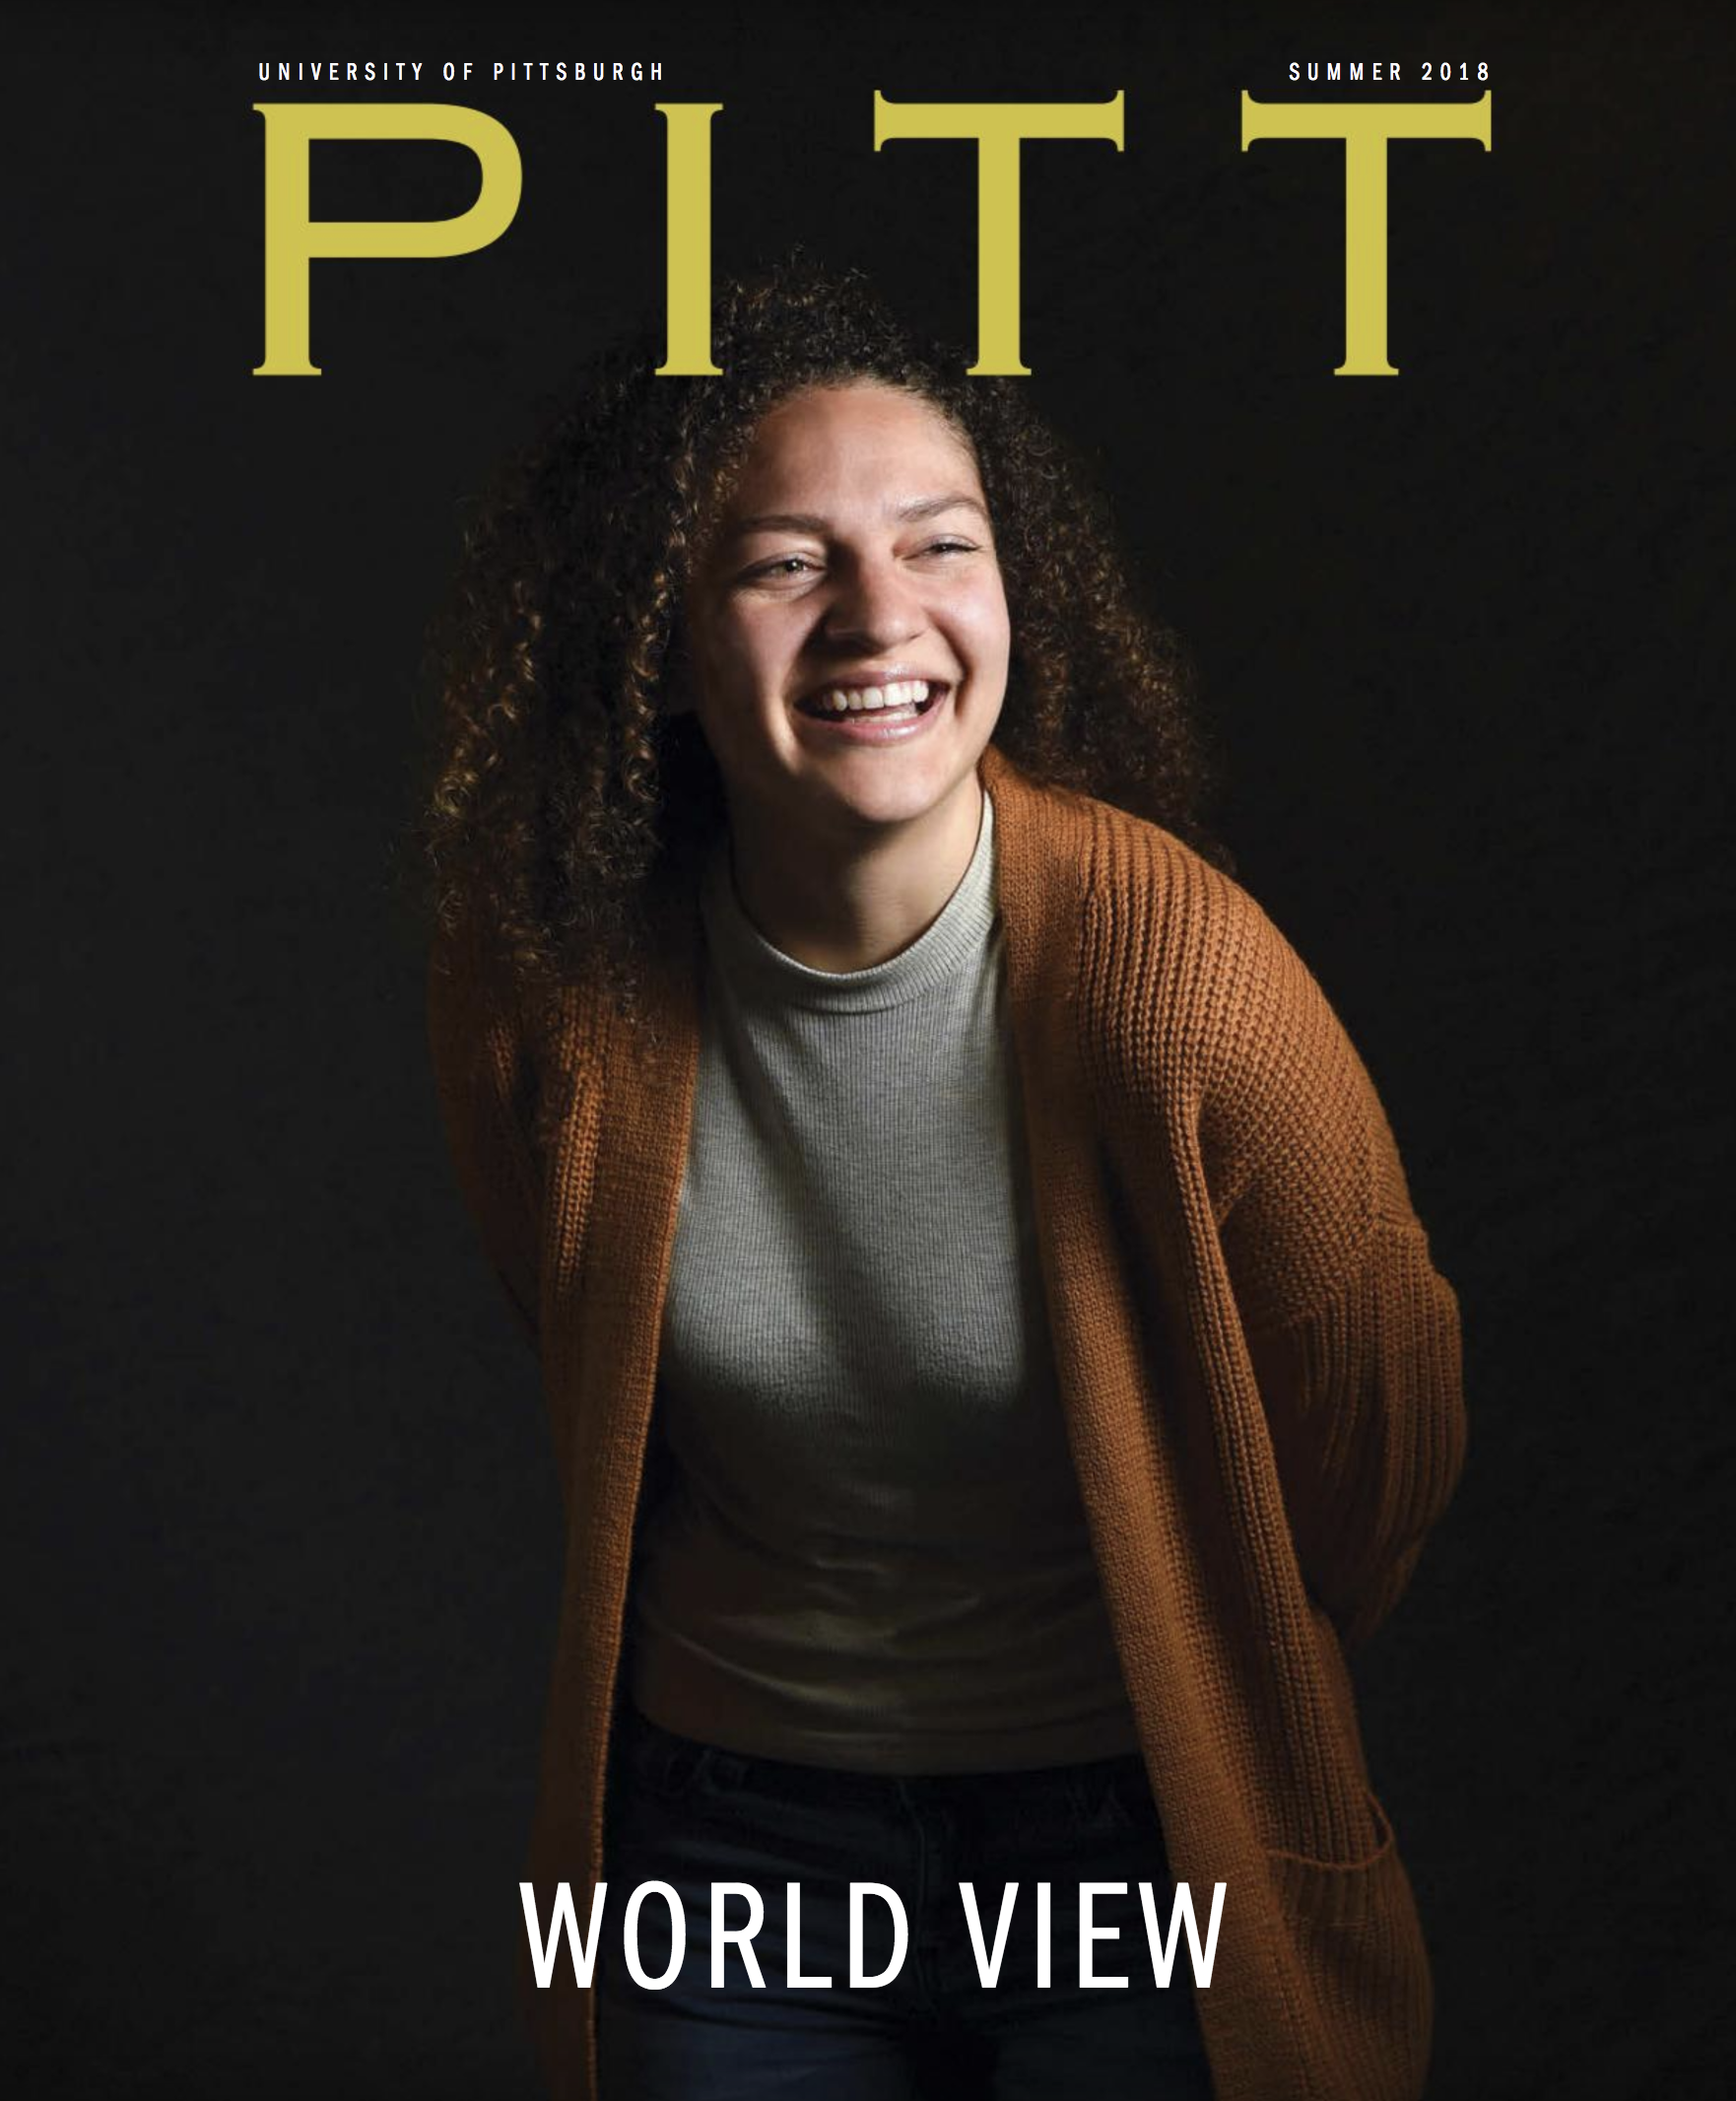 cover of the issue, which features a young smiling woman in a rusty colored sweater